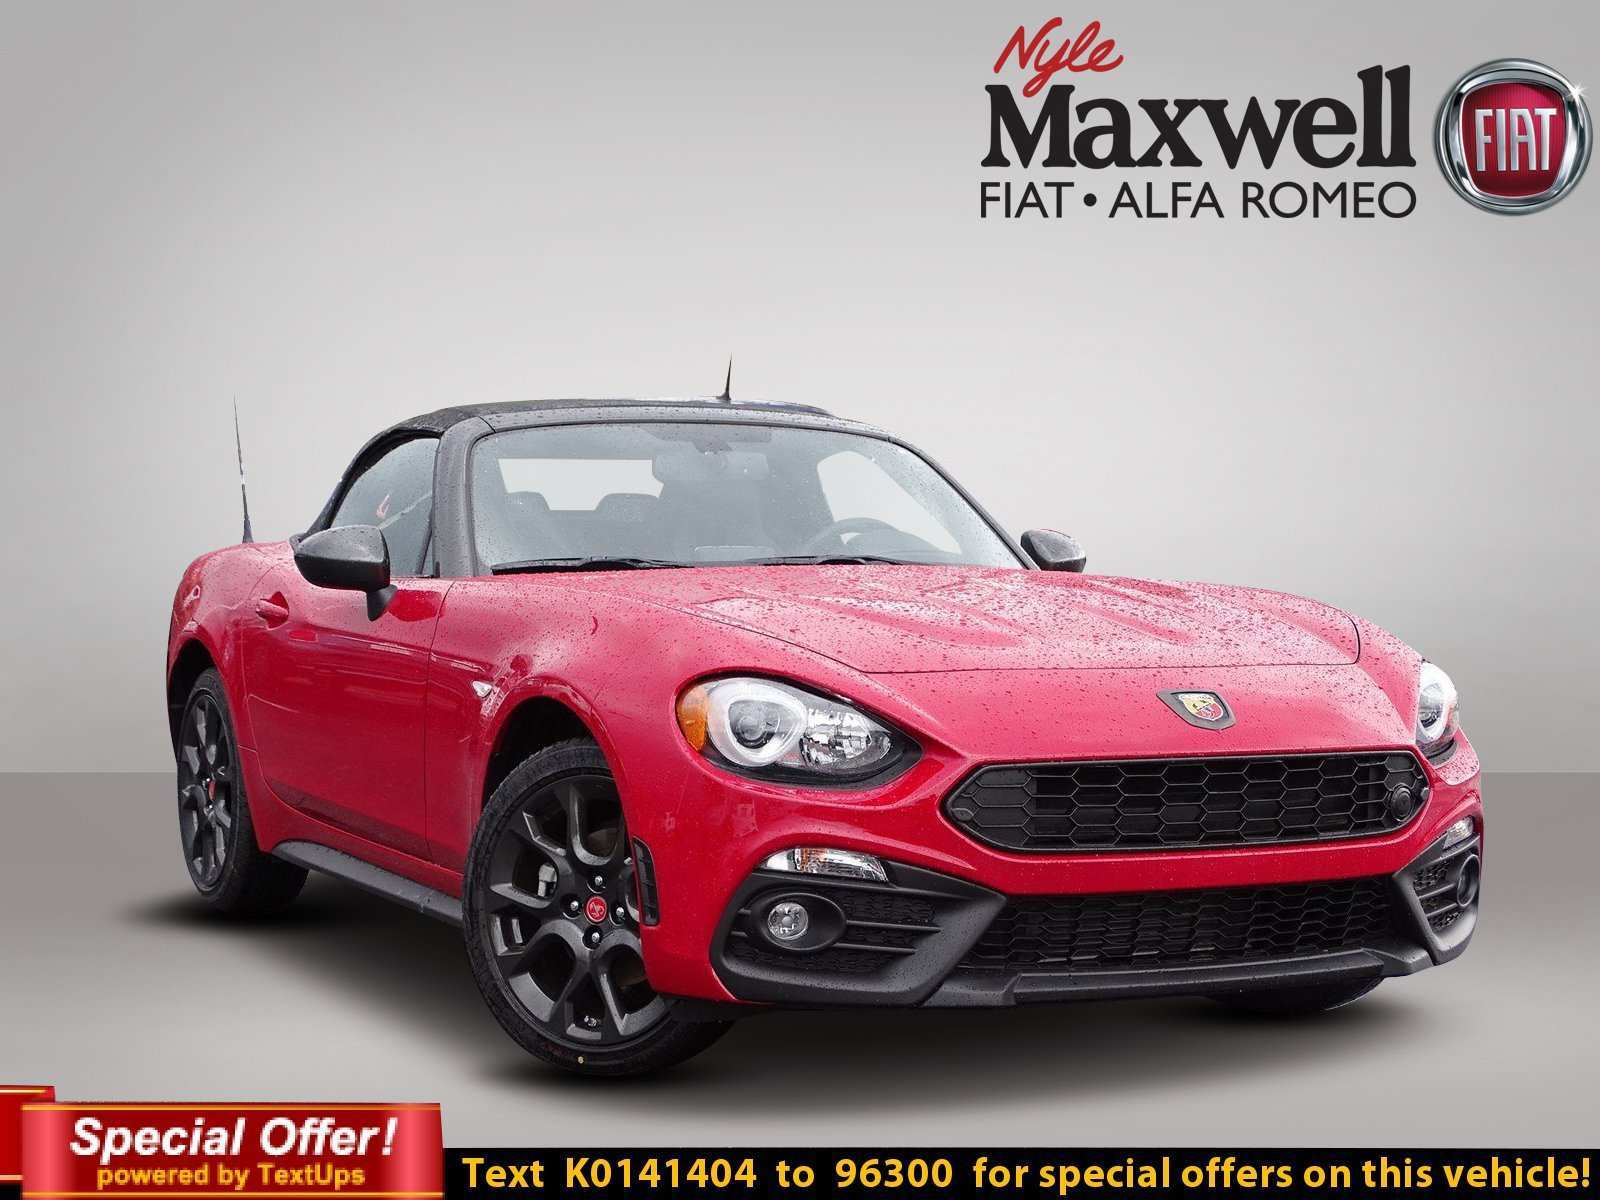 55 Best Review 2019 Fiat Spider Abarth Picture with 2019 Fiat Spider Abarth